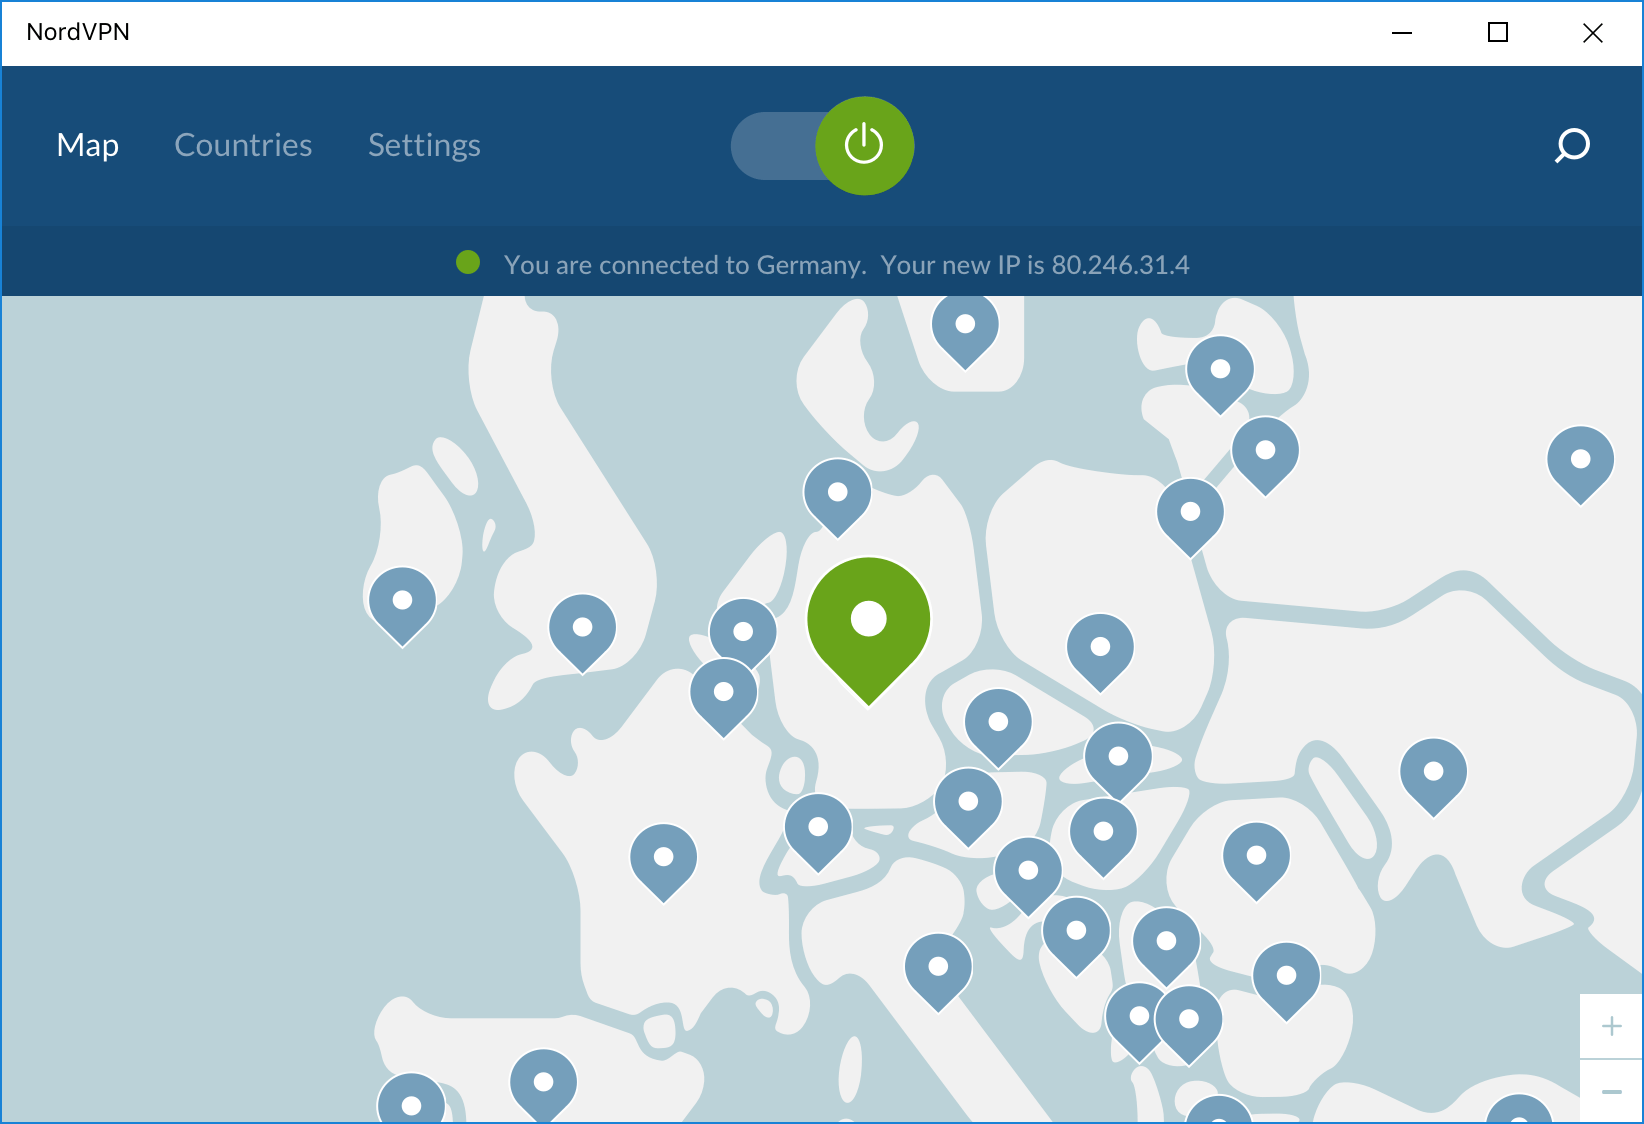 NordVPN lifetime vpn